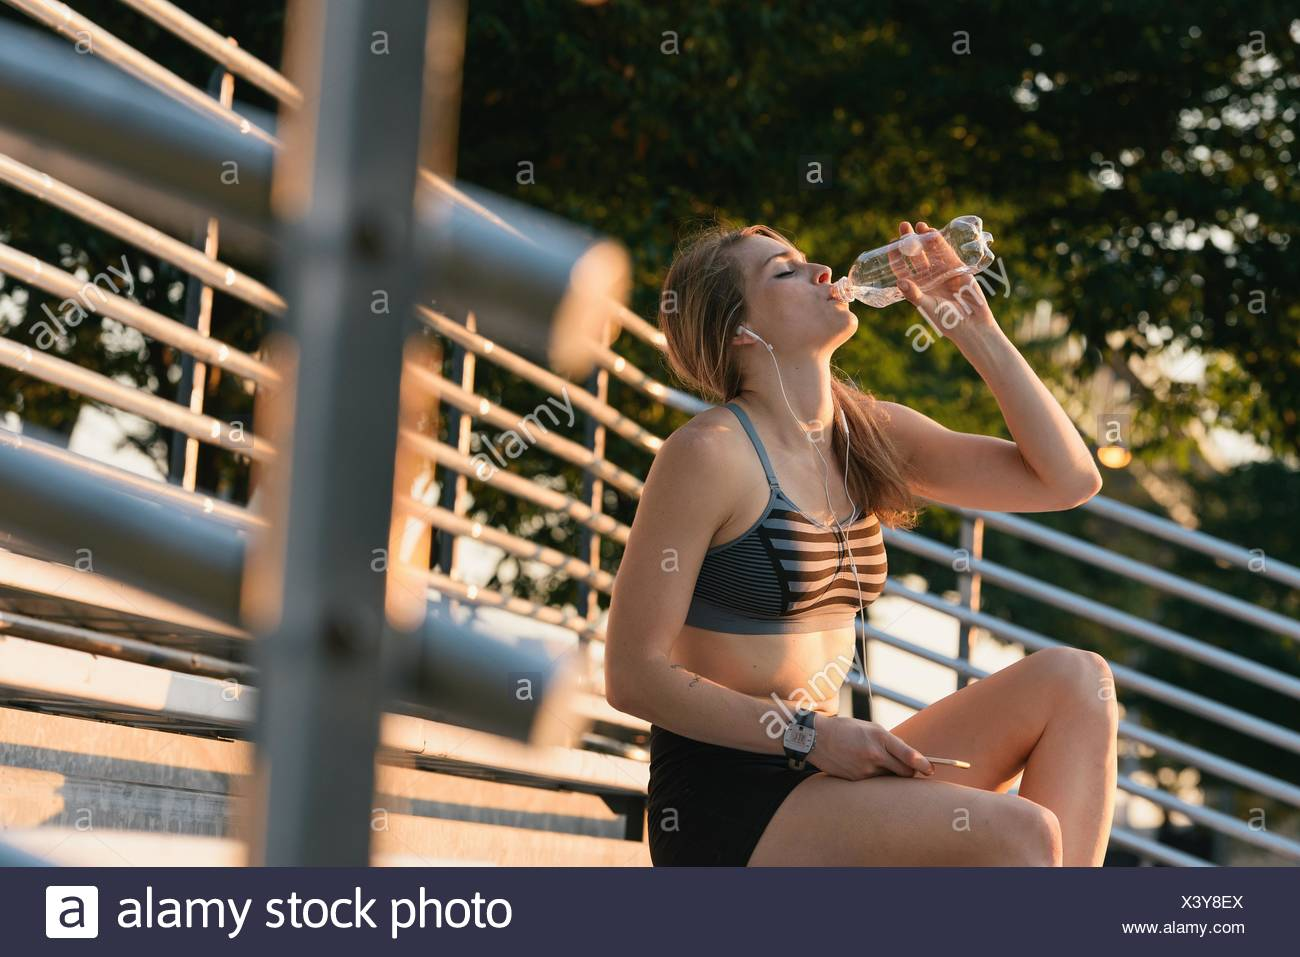 Young woman sitting outdoors, drinking from water bottle - Stock Image